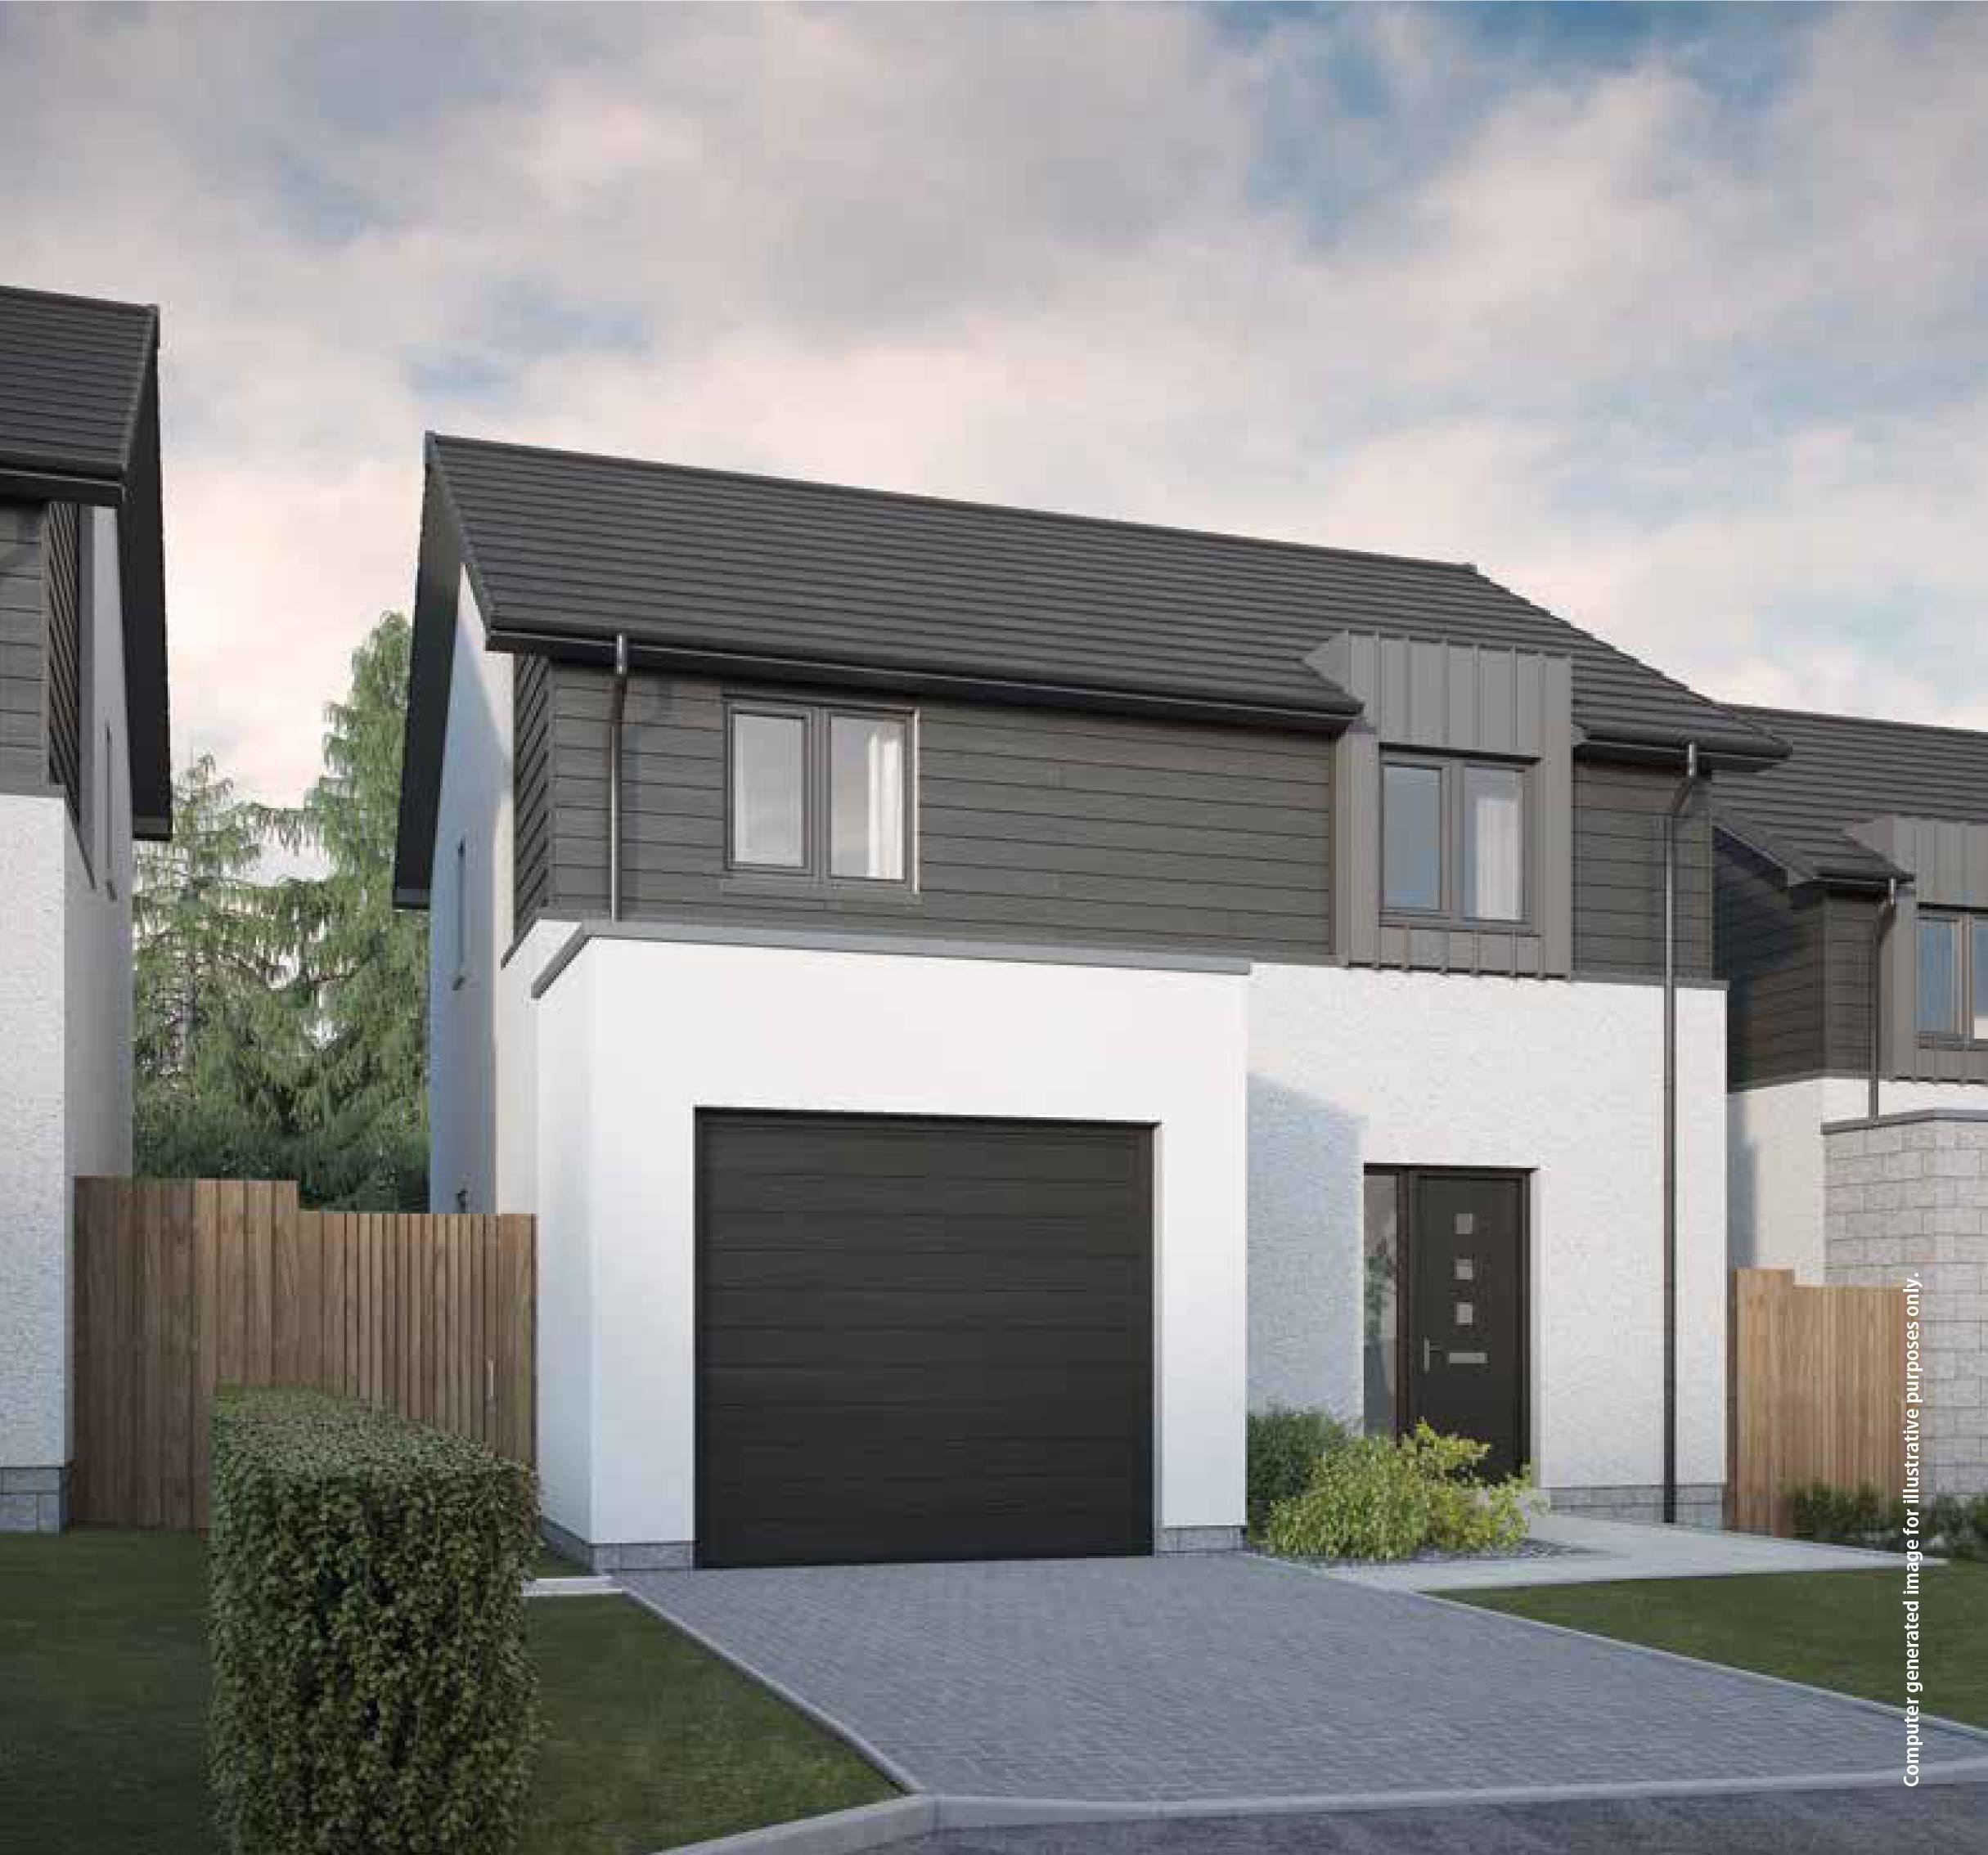 Best The Cairnfield 3 Bedroom House Aberdeen Bancon Homes With Pictures